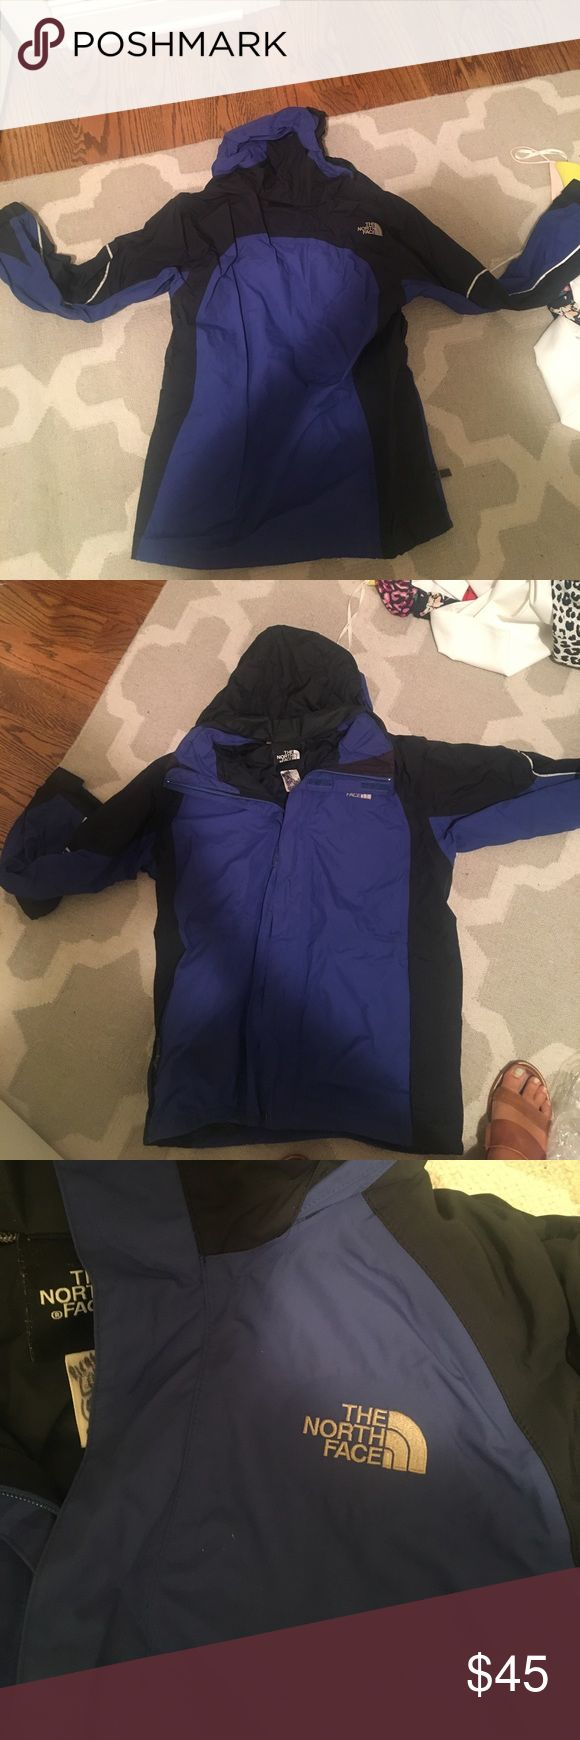 Youth XL women's XS north face ski jacket Good shape. Cobalt blue and black. Has phone number written on the tag, but no other blemishes. Can work as a ski jacket or a raincoat. North Face Jackets & Coats #RaincoatsForWomenTheNorthFace